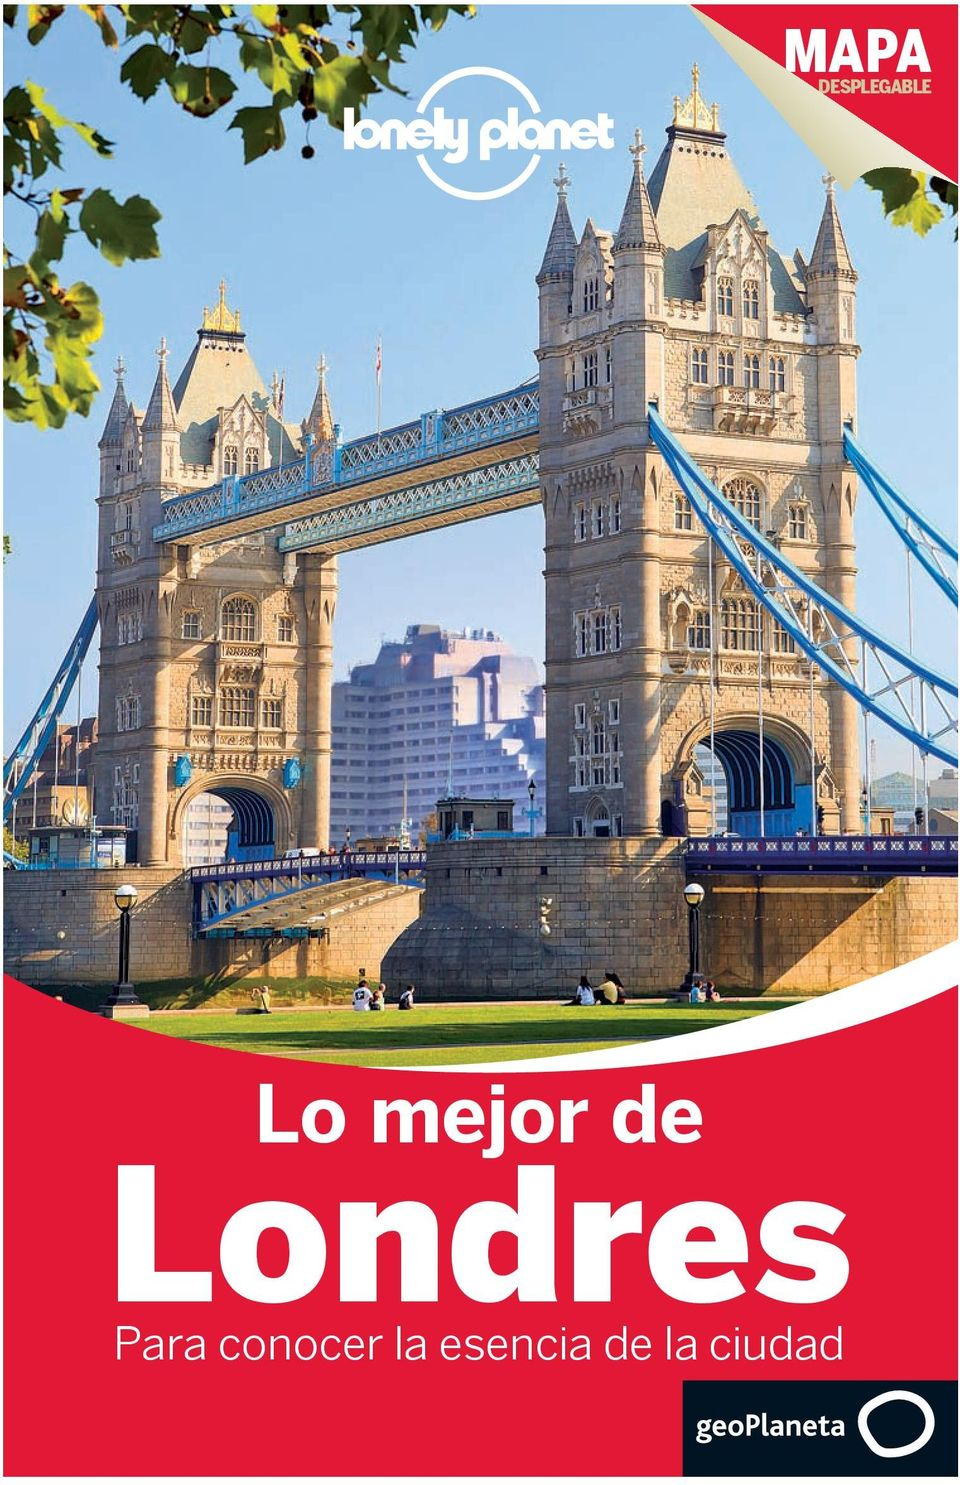 Experience the best of London